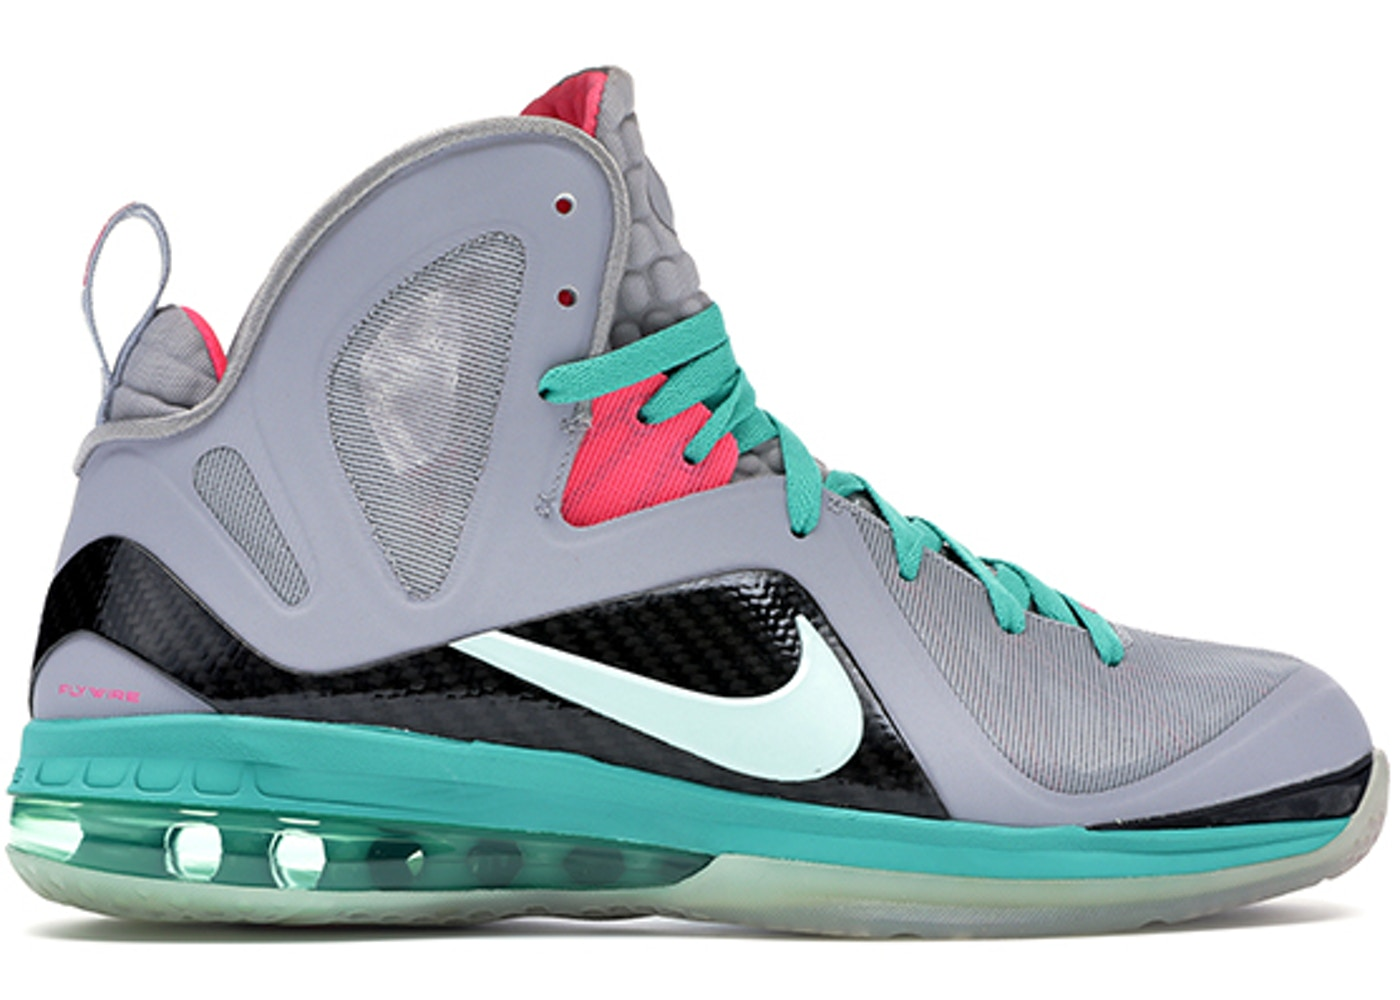 b86a262166fa LeBron 9 PS Elite South Beach - 516958-001